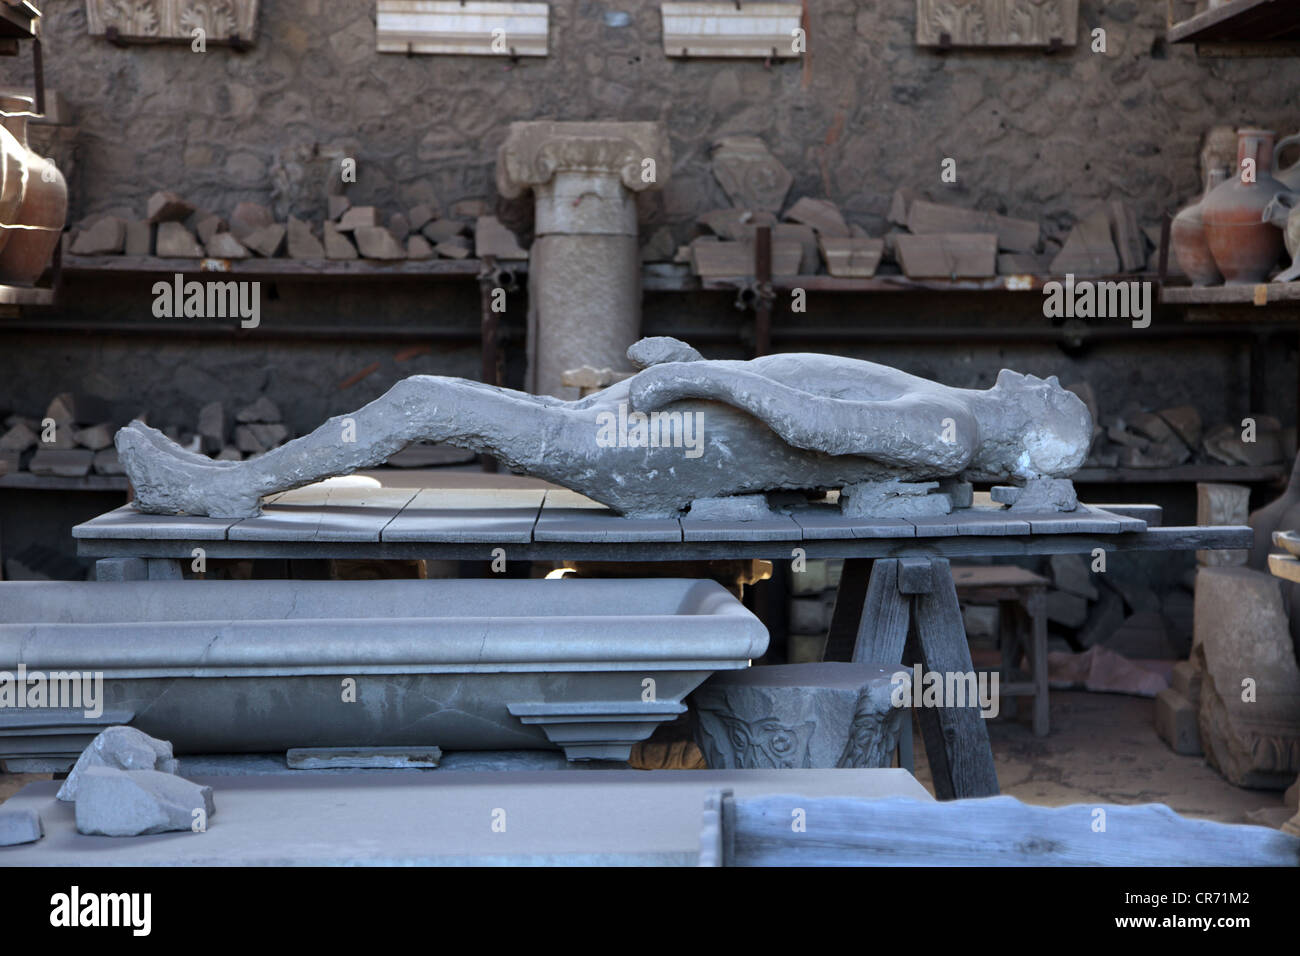 Plastercast of a Pompeii victim buried in volcanic ash - Stock Image